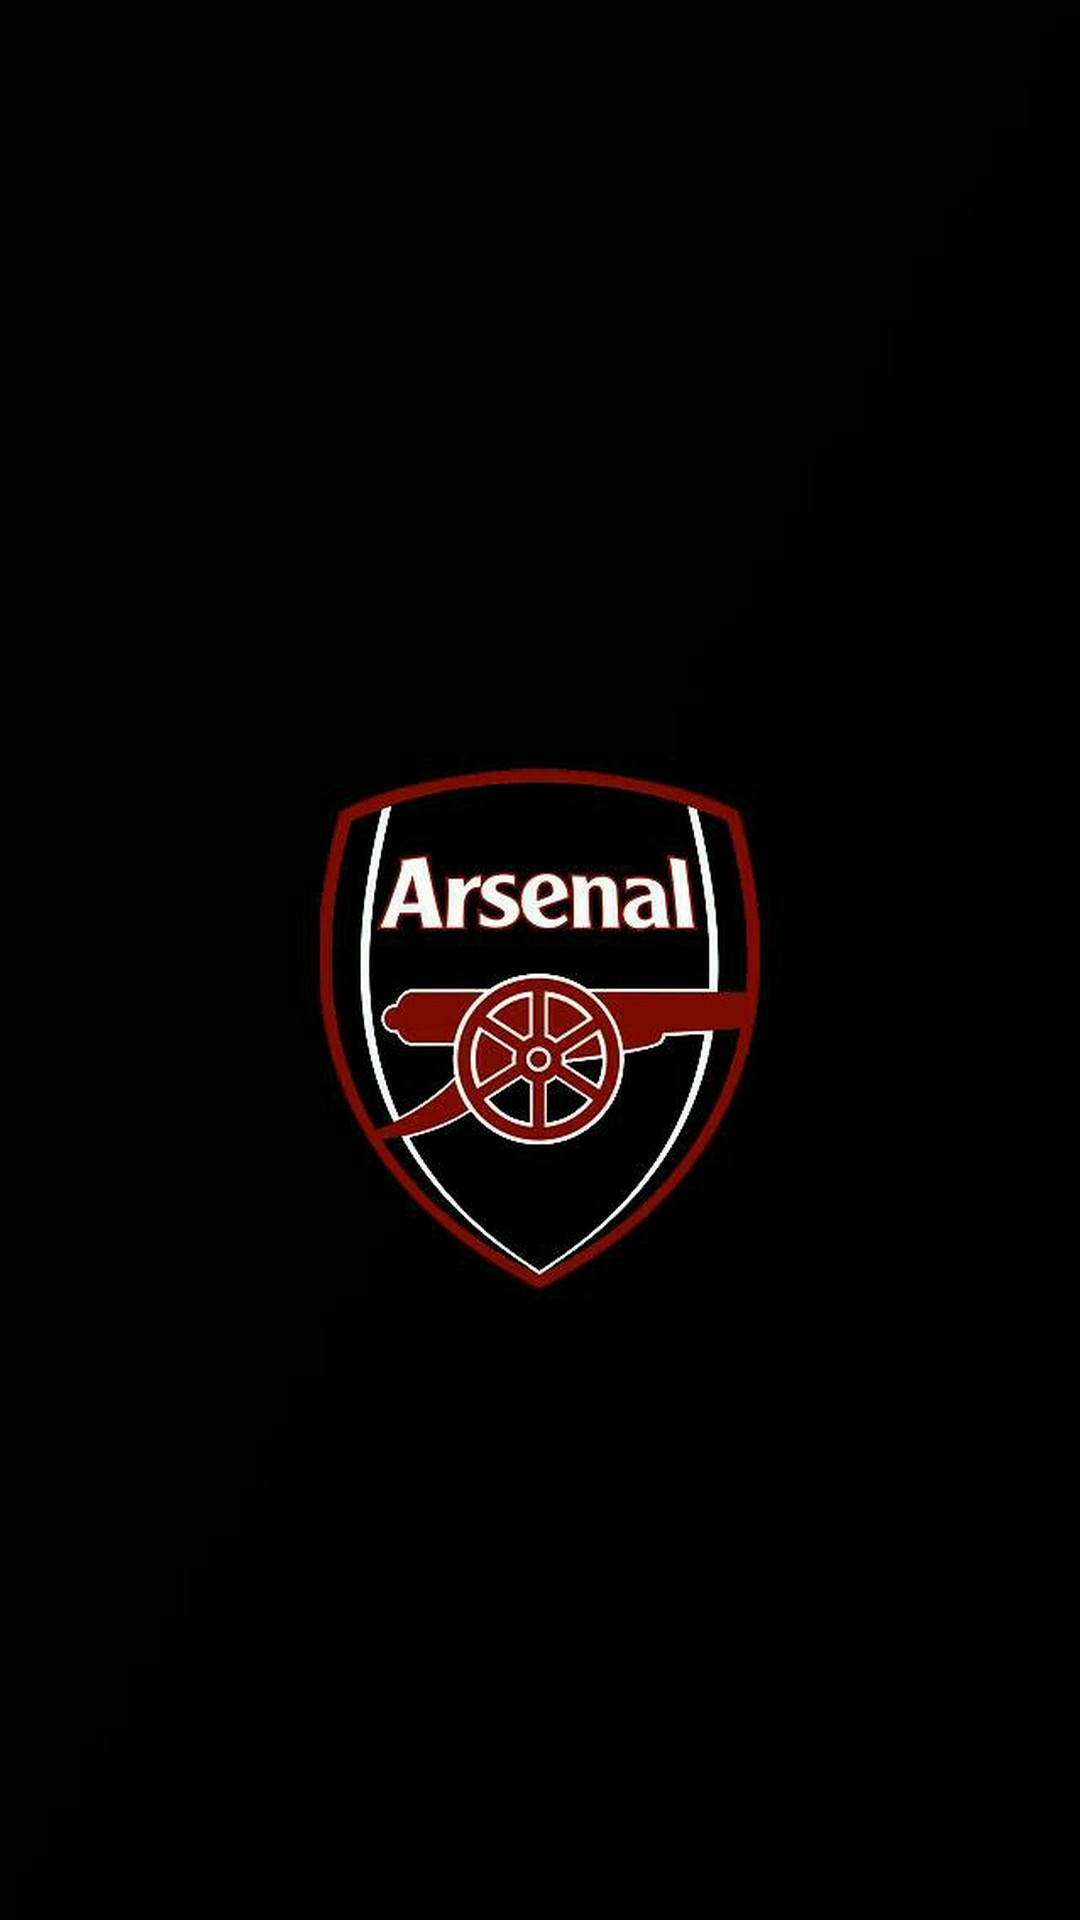 Arsenal FC Wallpaper Android   2020 Android Wallpapers 1080x1920